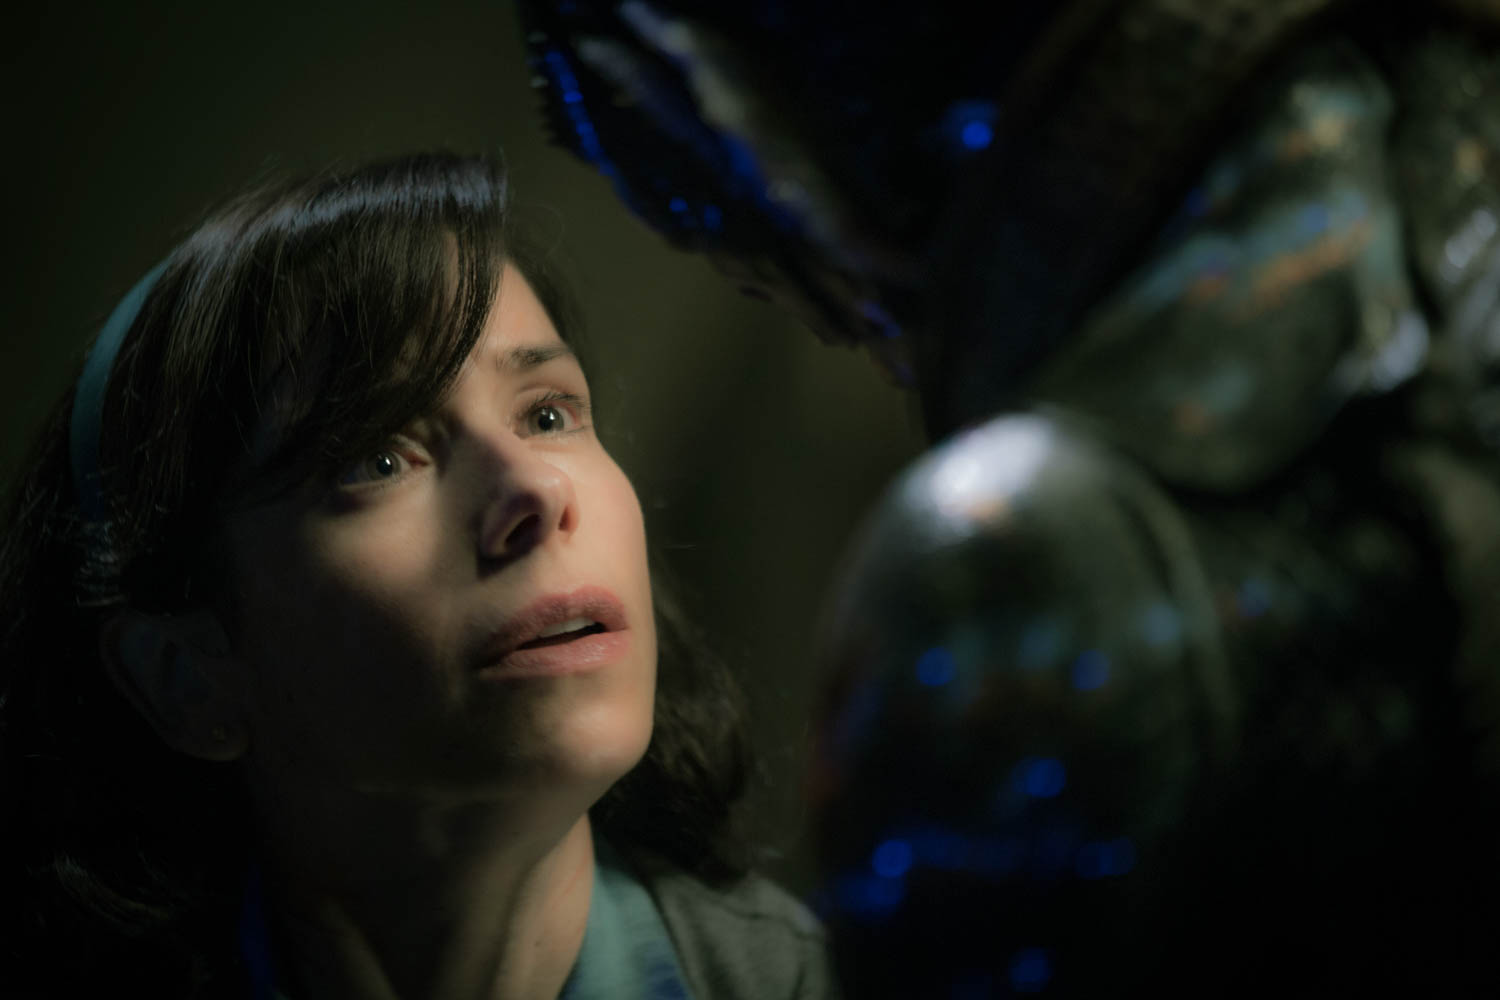 Sally Hawkins and Doug Jones in the film THE SHAPE OF WATER. Photo by Kerry Hayes. © 2017 Twentieth Century Fox Film Corporation All Rights Reserved. Used with permission.